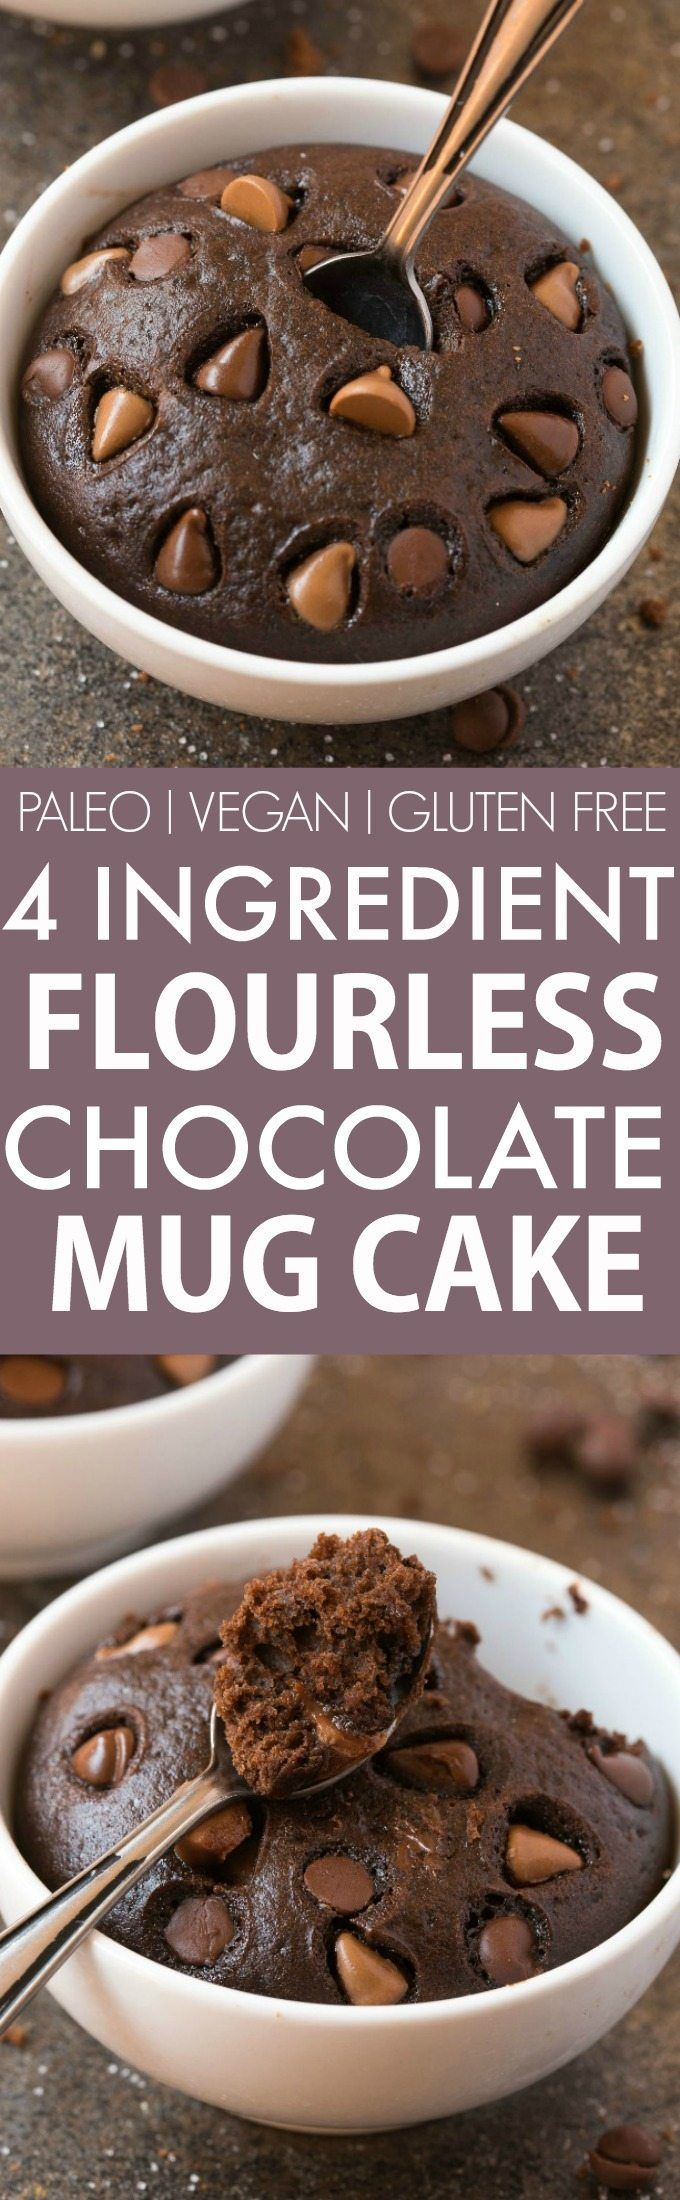 4 Ingredient Flourless Chocolate Mug Cake (V, GF, Paleo)- Ready in just ONE minute, this HEALTHY 4-ingredient chocolate cake is moist, gooey, naturally sweetened and has NO butter, oil, flour, grains or sugar, but you'd never tell- Oven option too! {vegan, gluten free, paleo recipe}- http://thebigmansworld.com